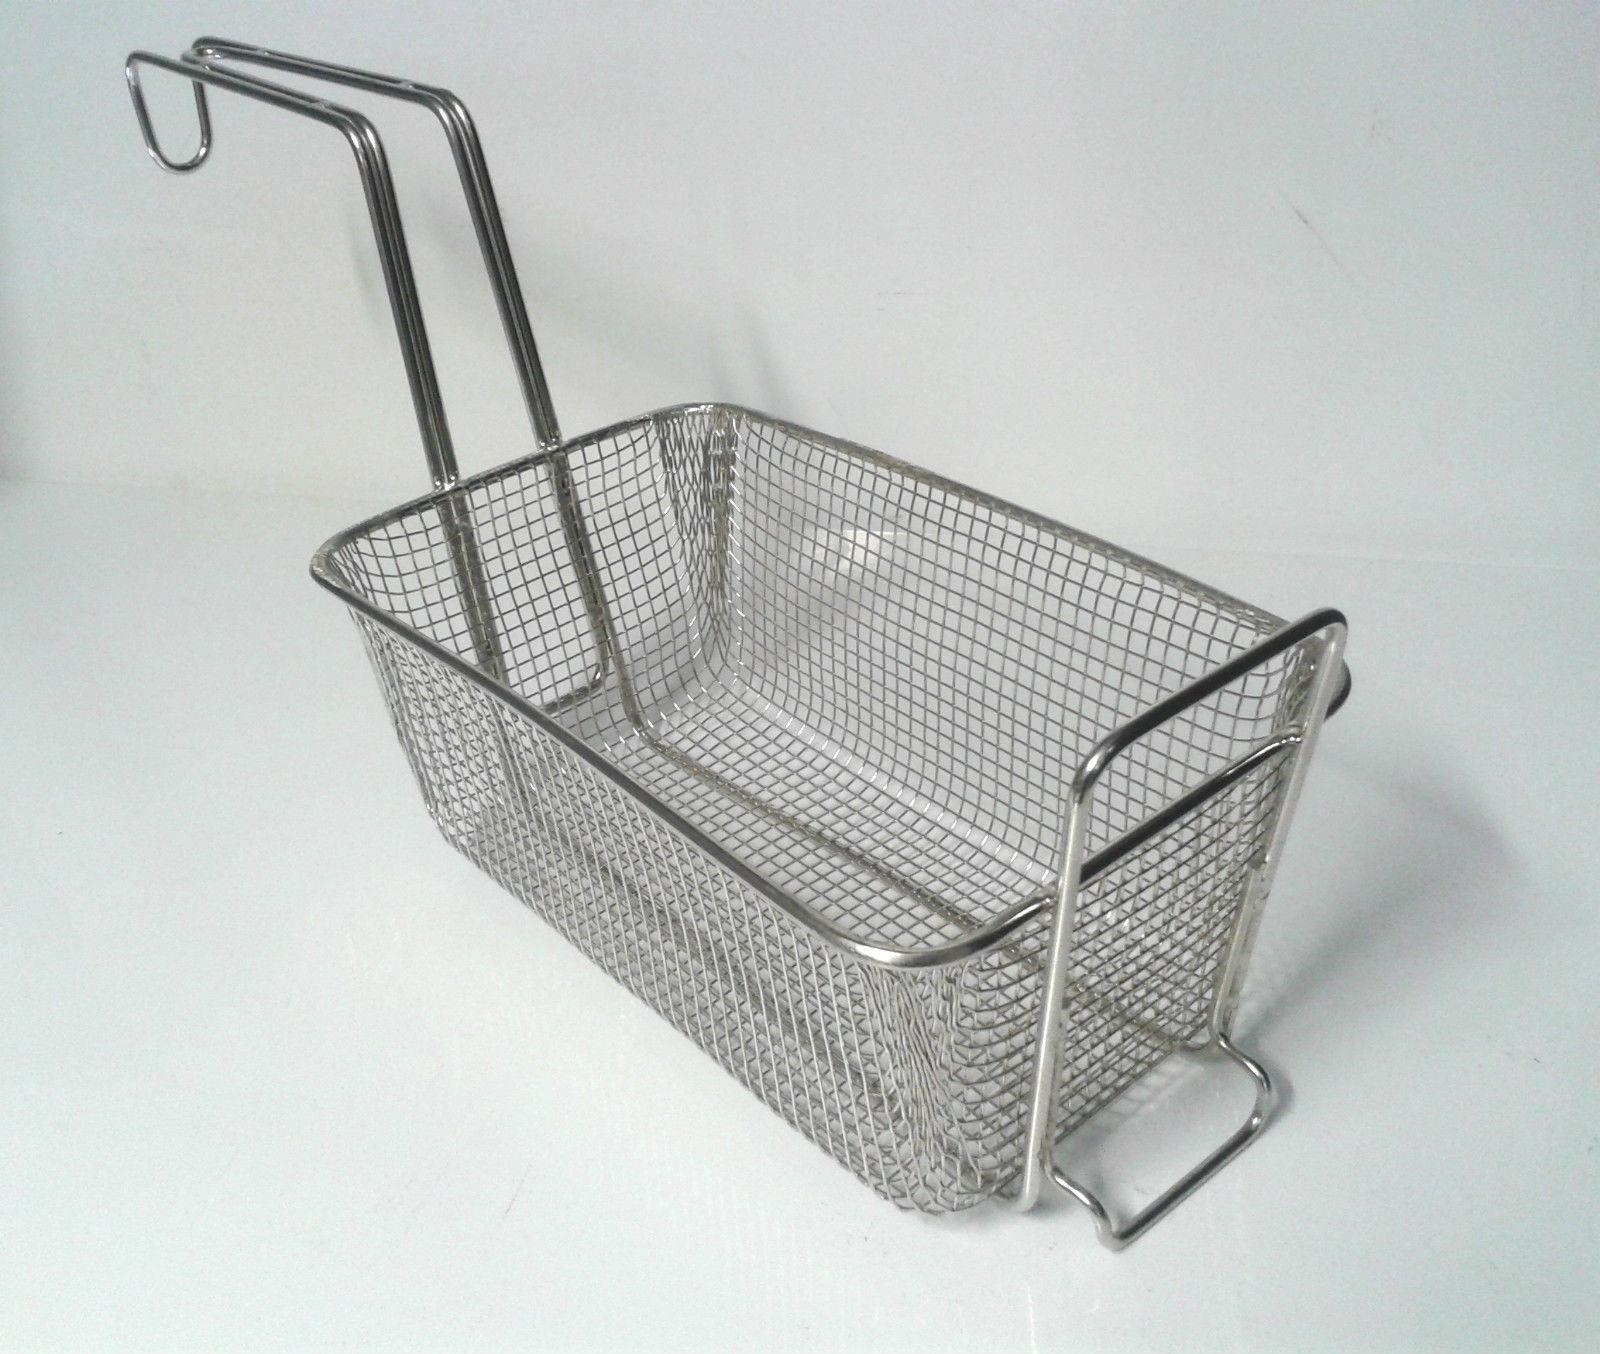 4 X Fryer Baskets For Valentine Pension 2 Istanbul